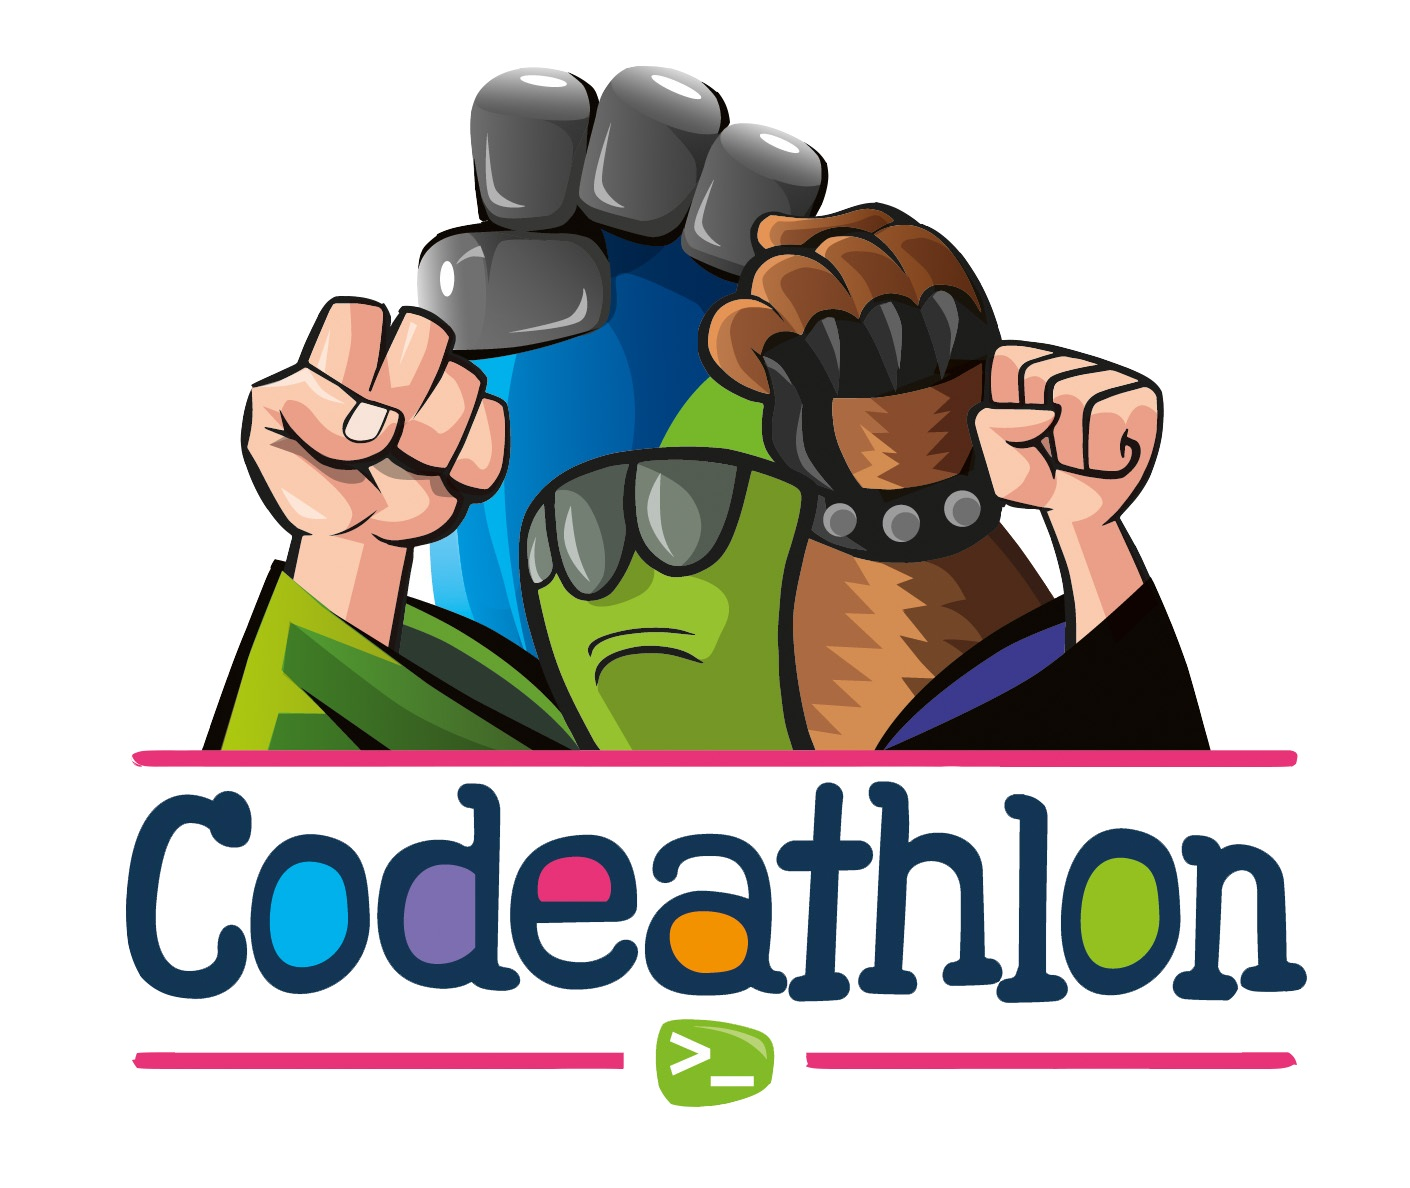 Codeathlon is a programming and robotics league for Codelearn students